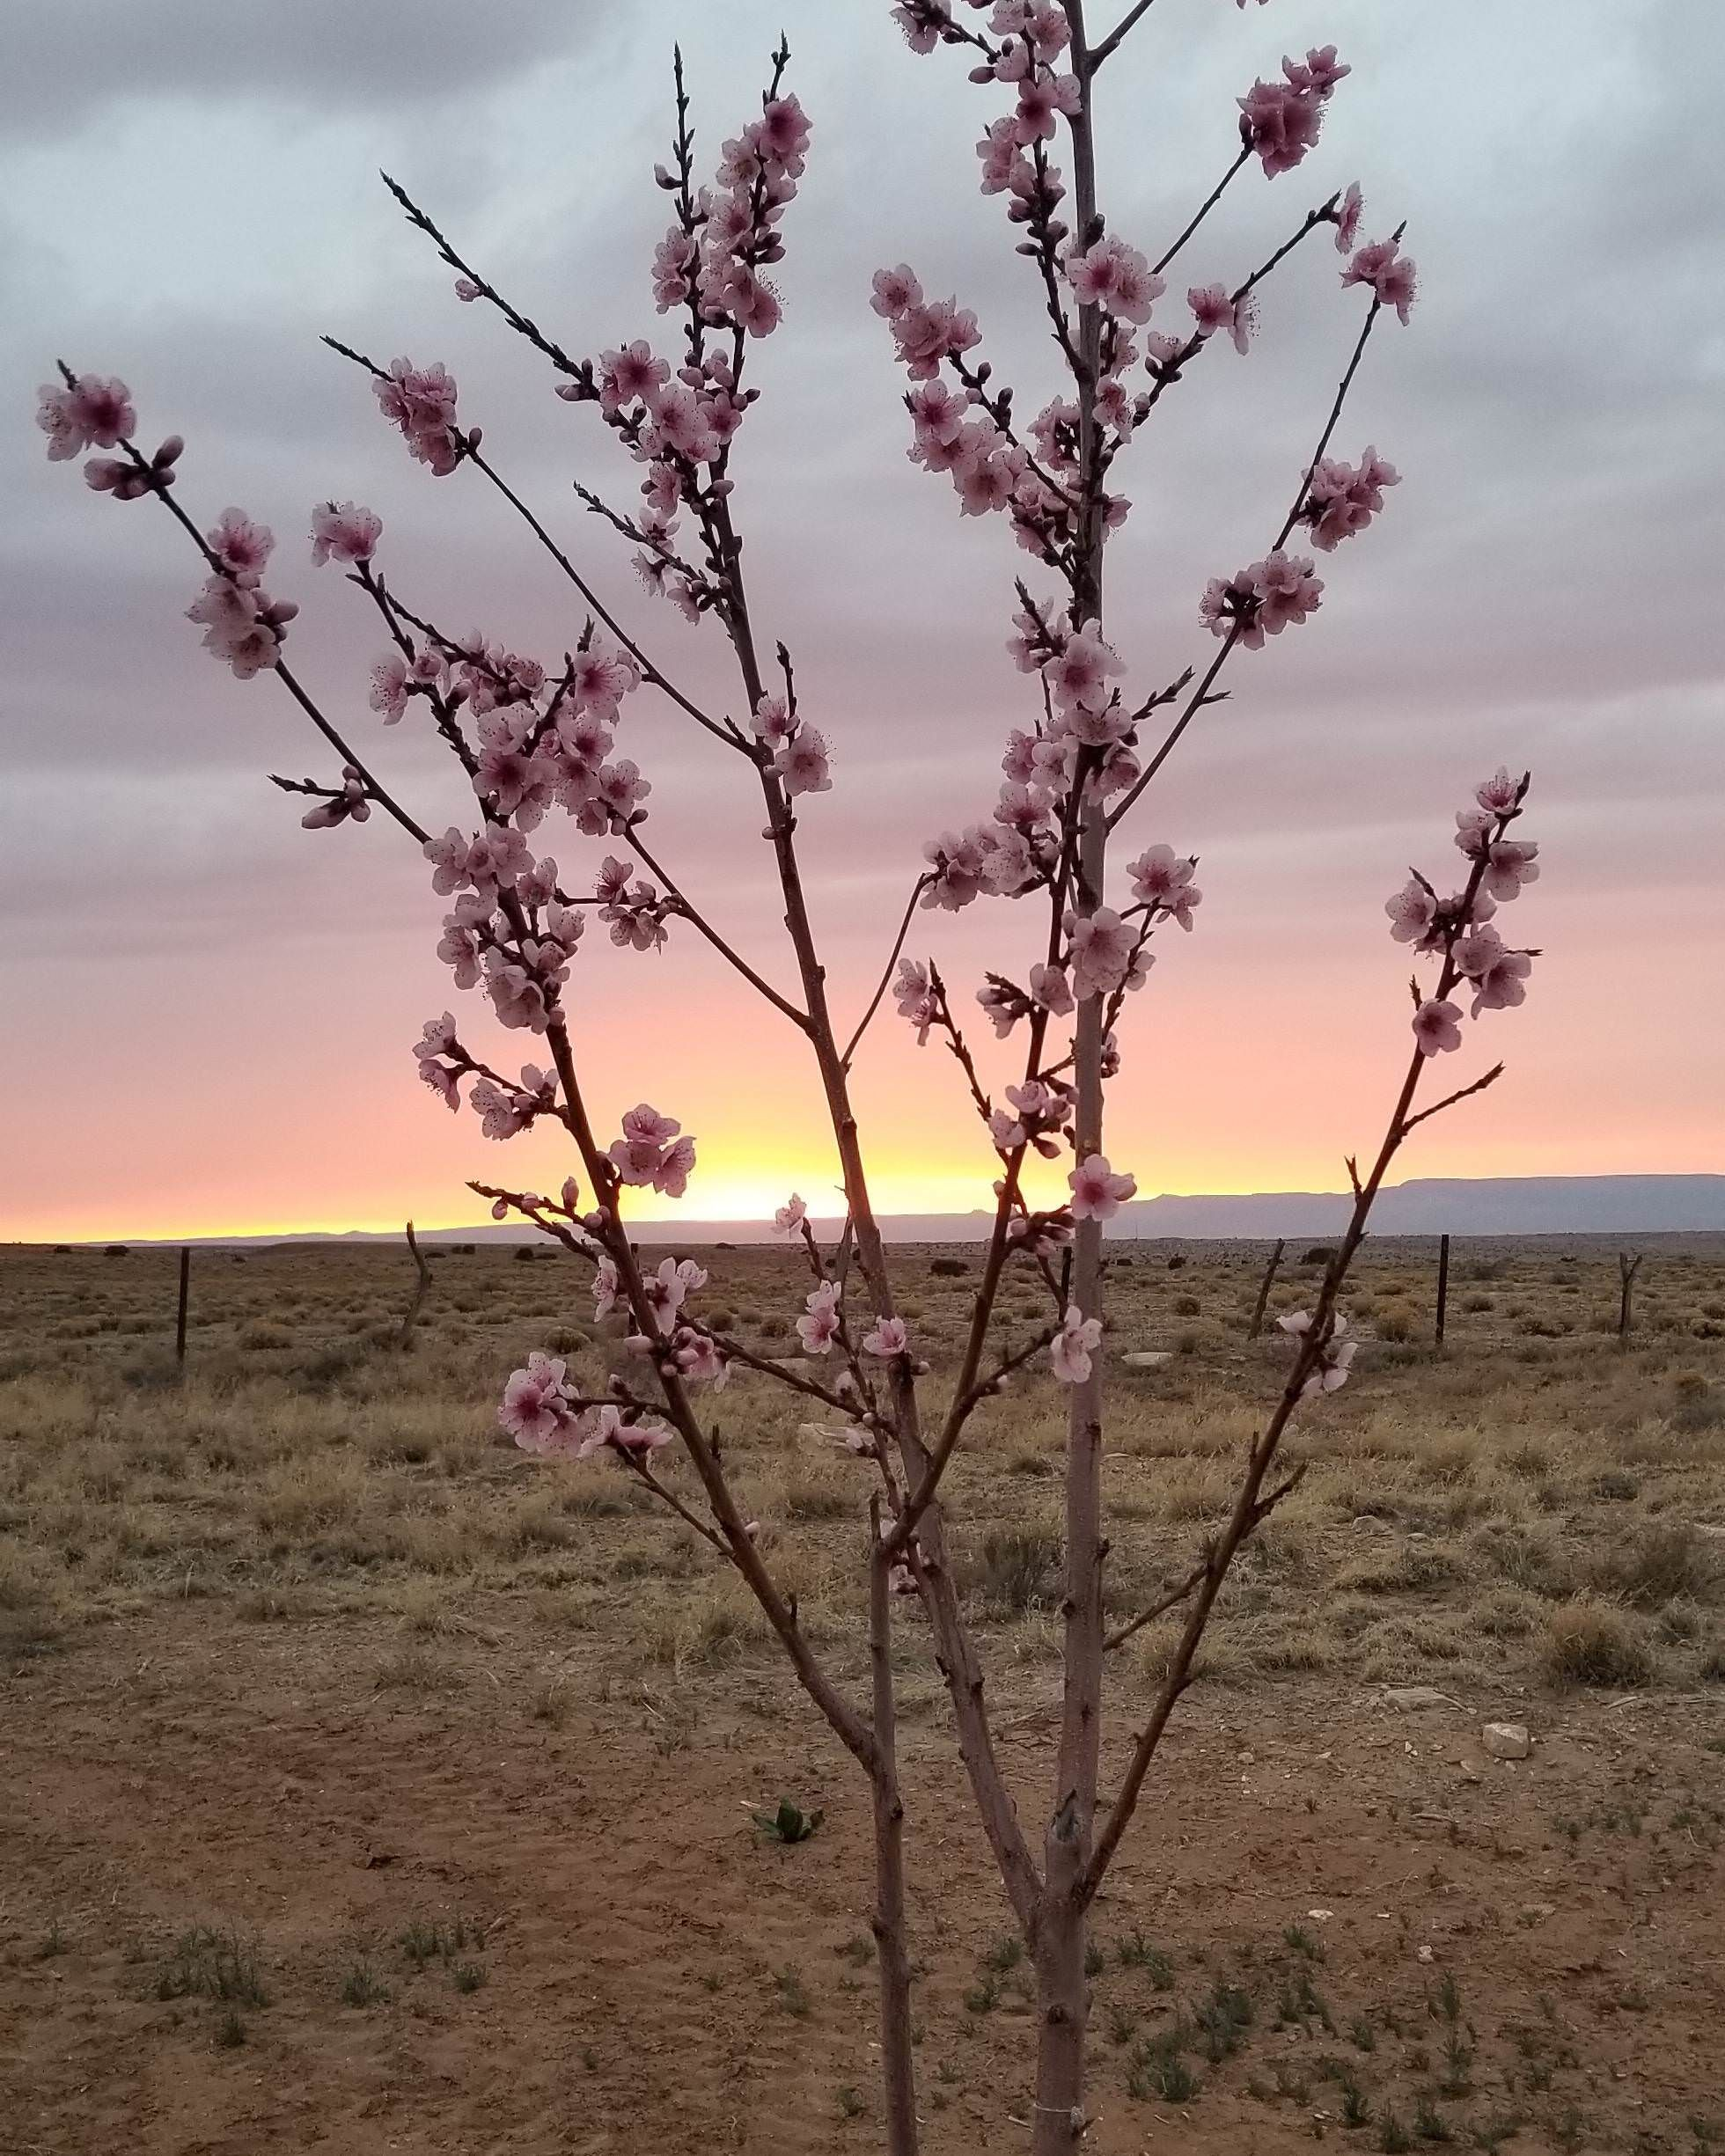 Greetings from the navajo nation heres my peach tree in full bloom greetings from the navajo nation heres my peach tree in full bloom at sunset m4hsunfo